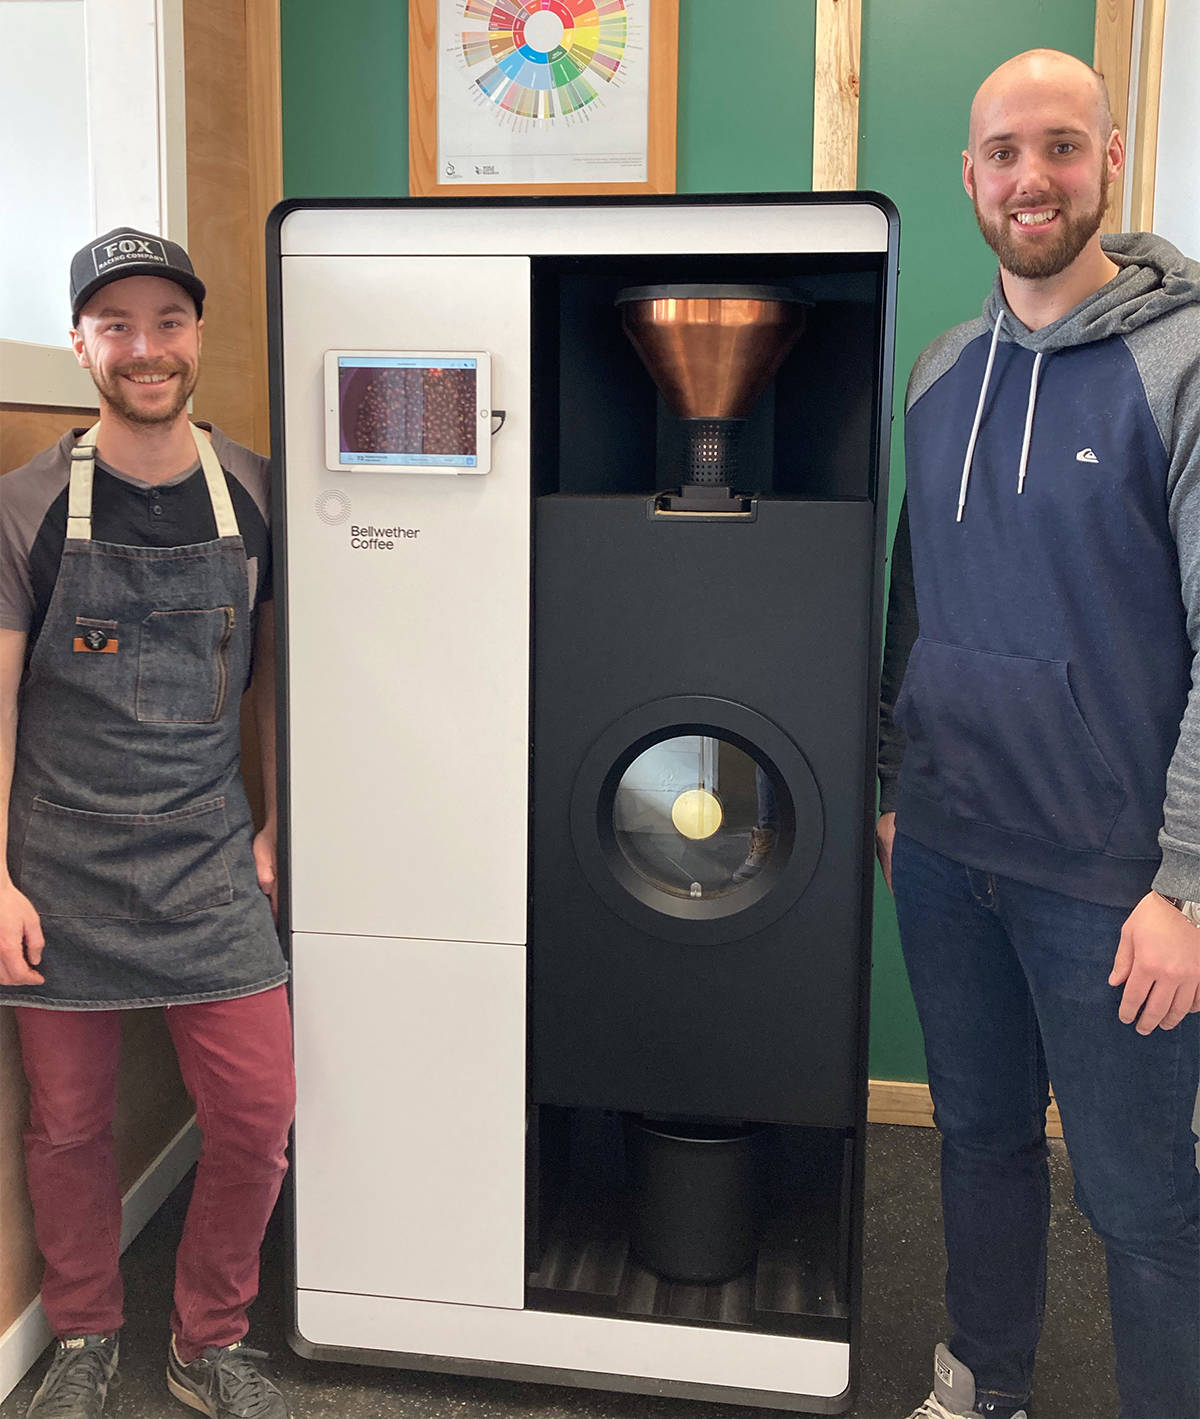 Robin Konjer and Landon Zabolotniuk's startup business, Multiply Coffee, supplies Vernon-area shops with coffee roasted fresh, using a zero-emission roaster. (Contributed)